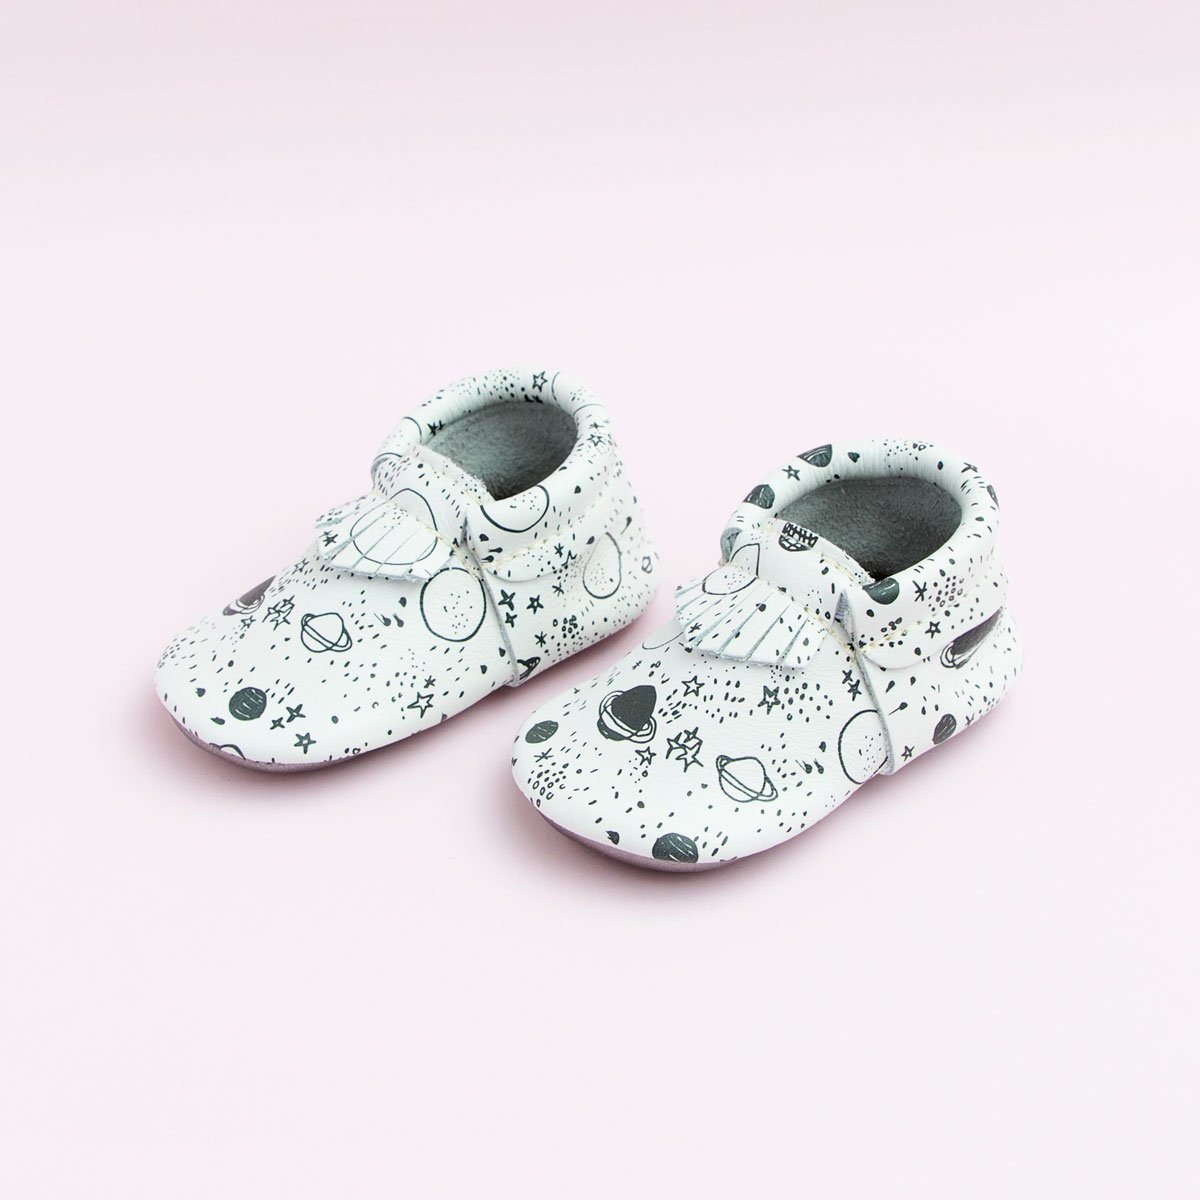 Moon Bounce Mini Sole City Mocc | Pre-Order